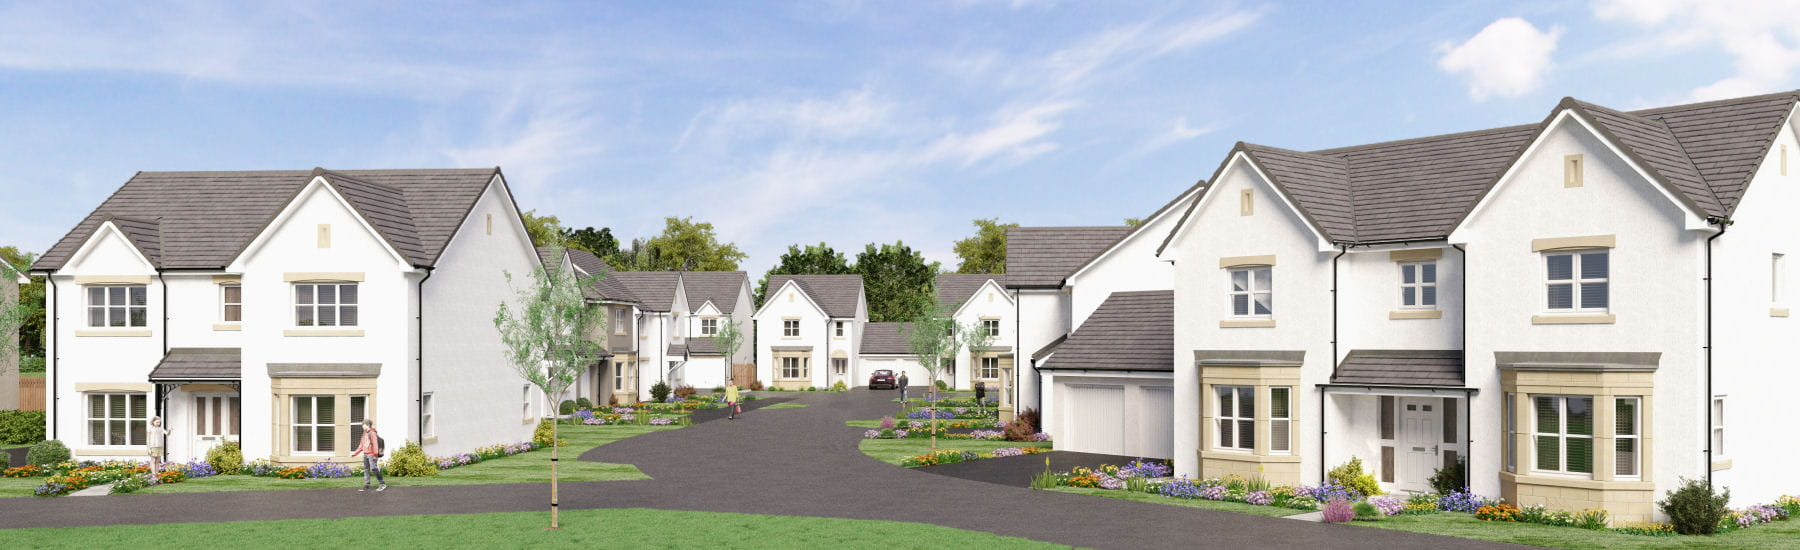 New build homes Fife, UK | 1 - 5 Bedroom Homes for sale in